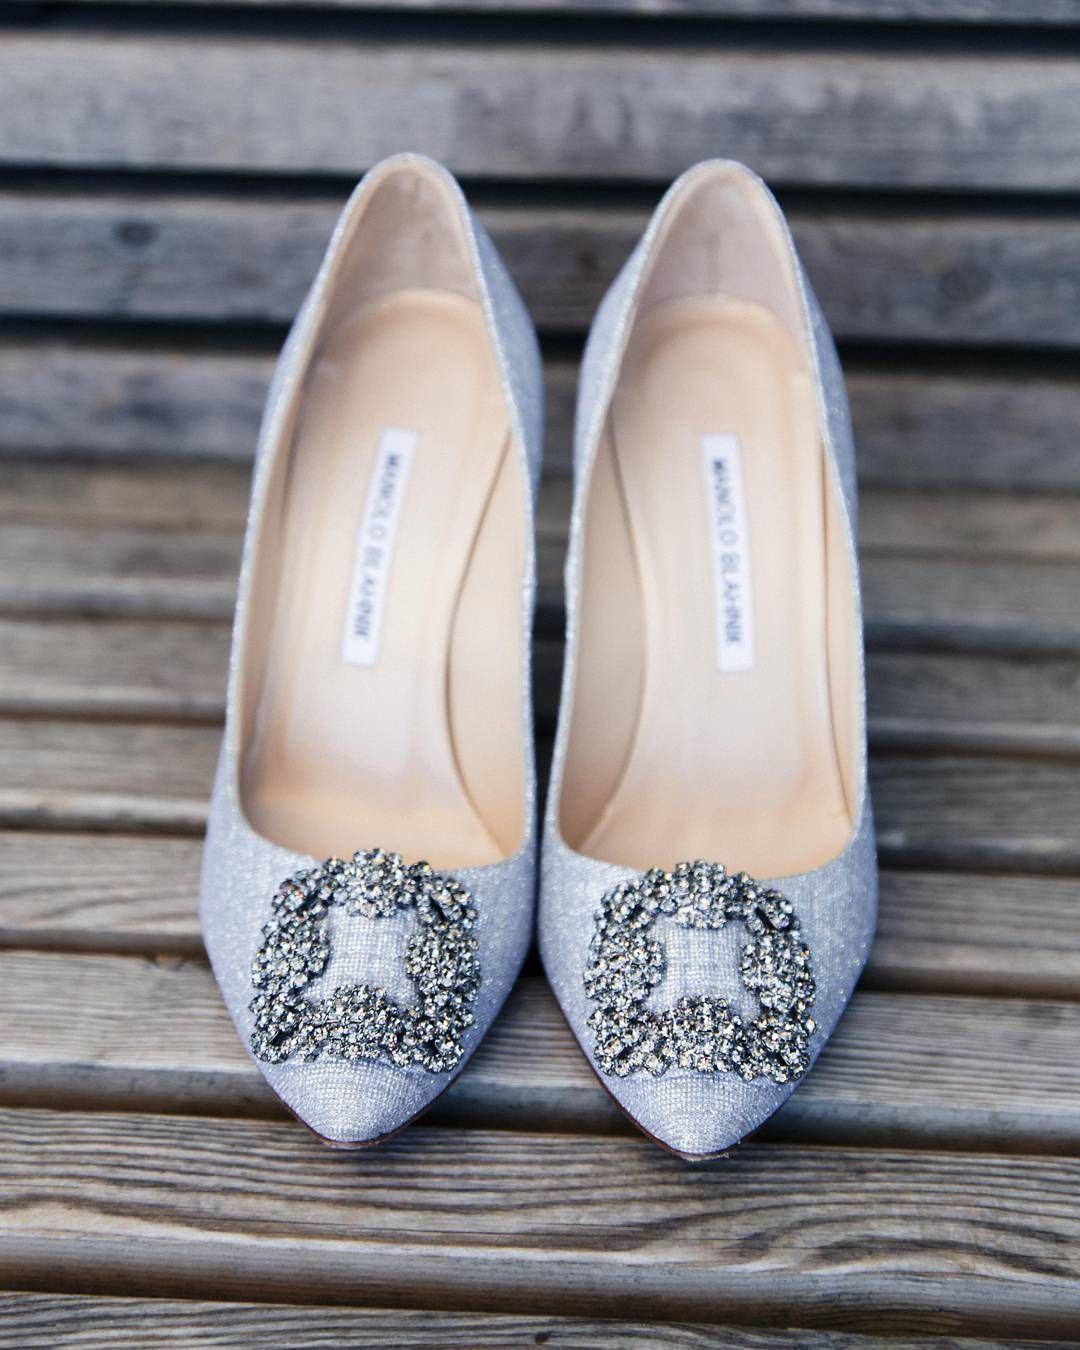 awesome vancouver wedding A timeless style with glamorous detailing Photo: #rawflaxstudio #brides #love #manoloblahnik #hangisi #crystalbuckle #pumps #weddingshoes #bridal #shoes #classic #timeless #crystals #designershoes #highheels #instawedding #shoesoftheday #vancouverbride #dlove_affair by @dlove_affair  #vancouverwedding #vancouverwedding